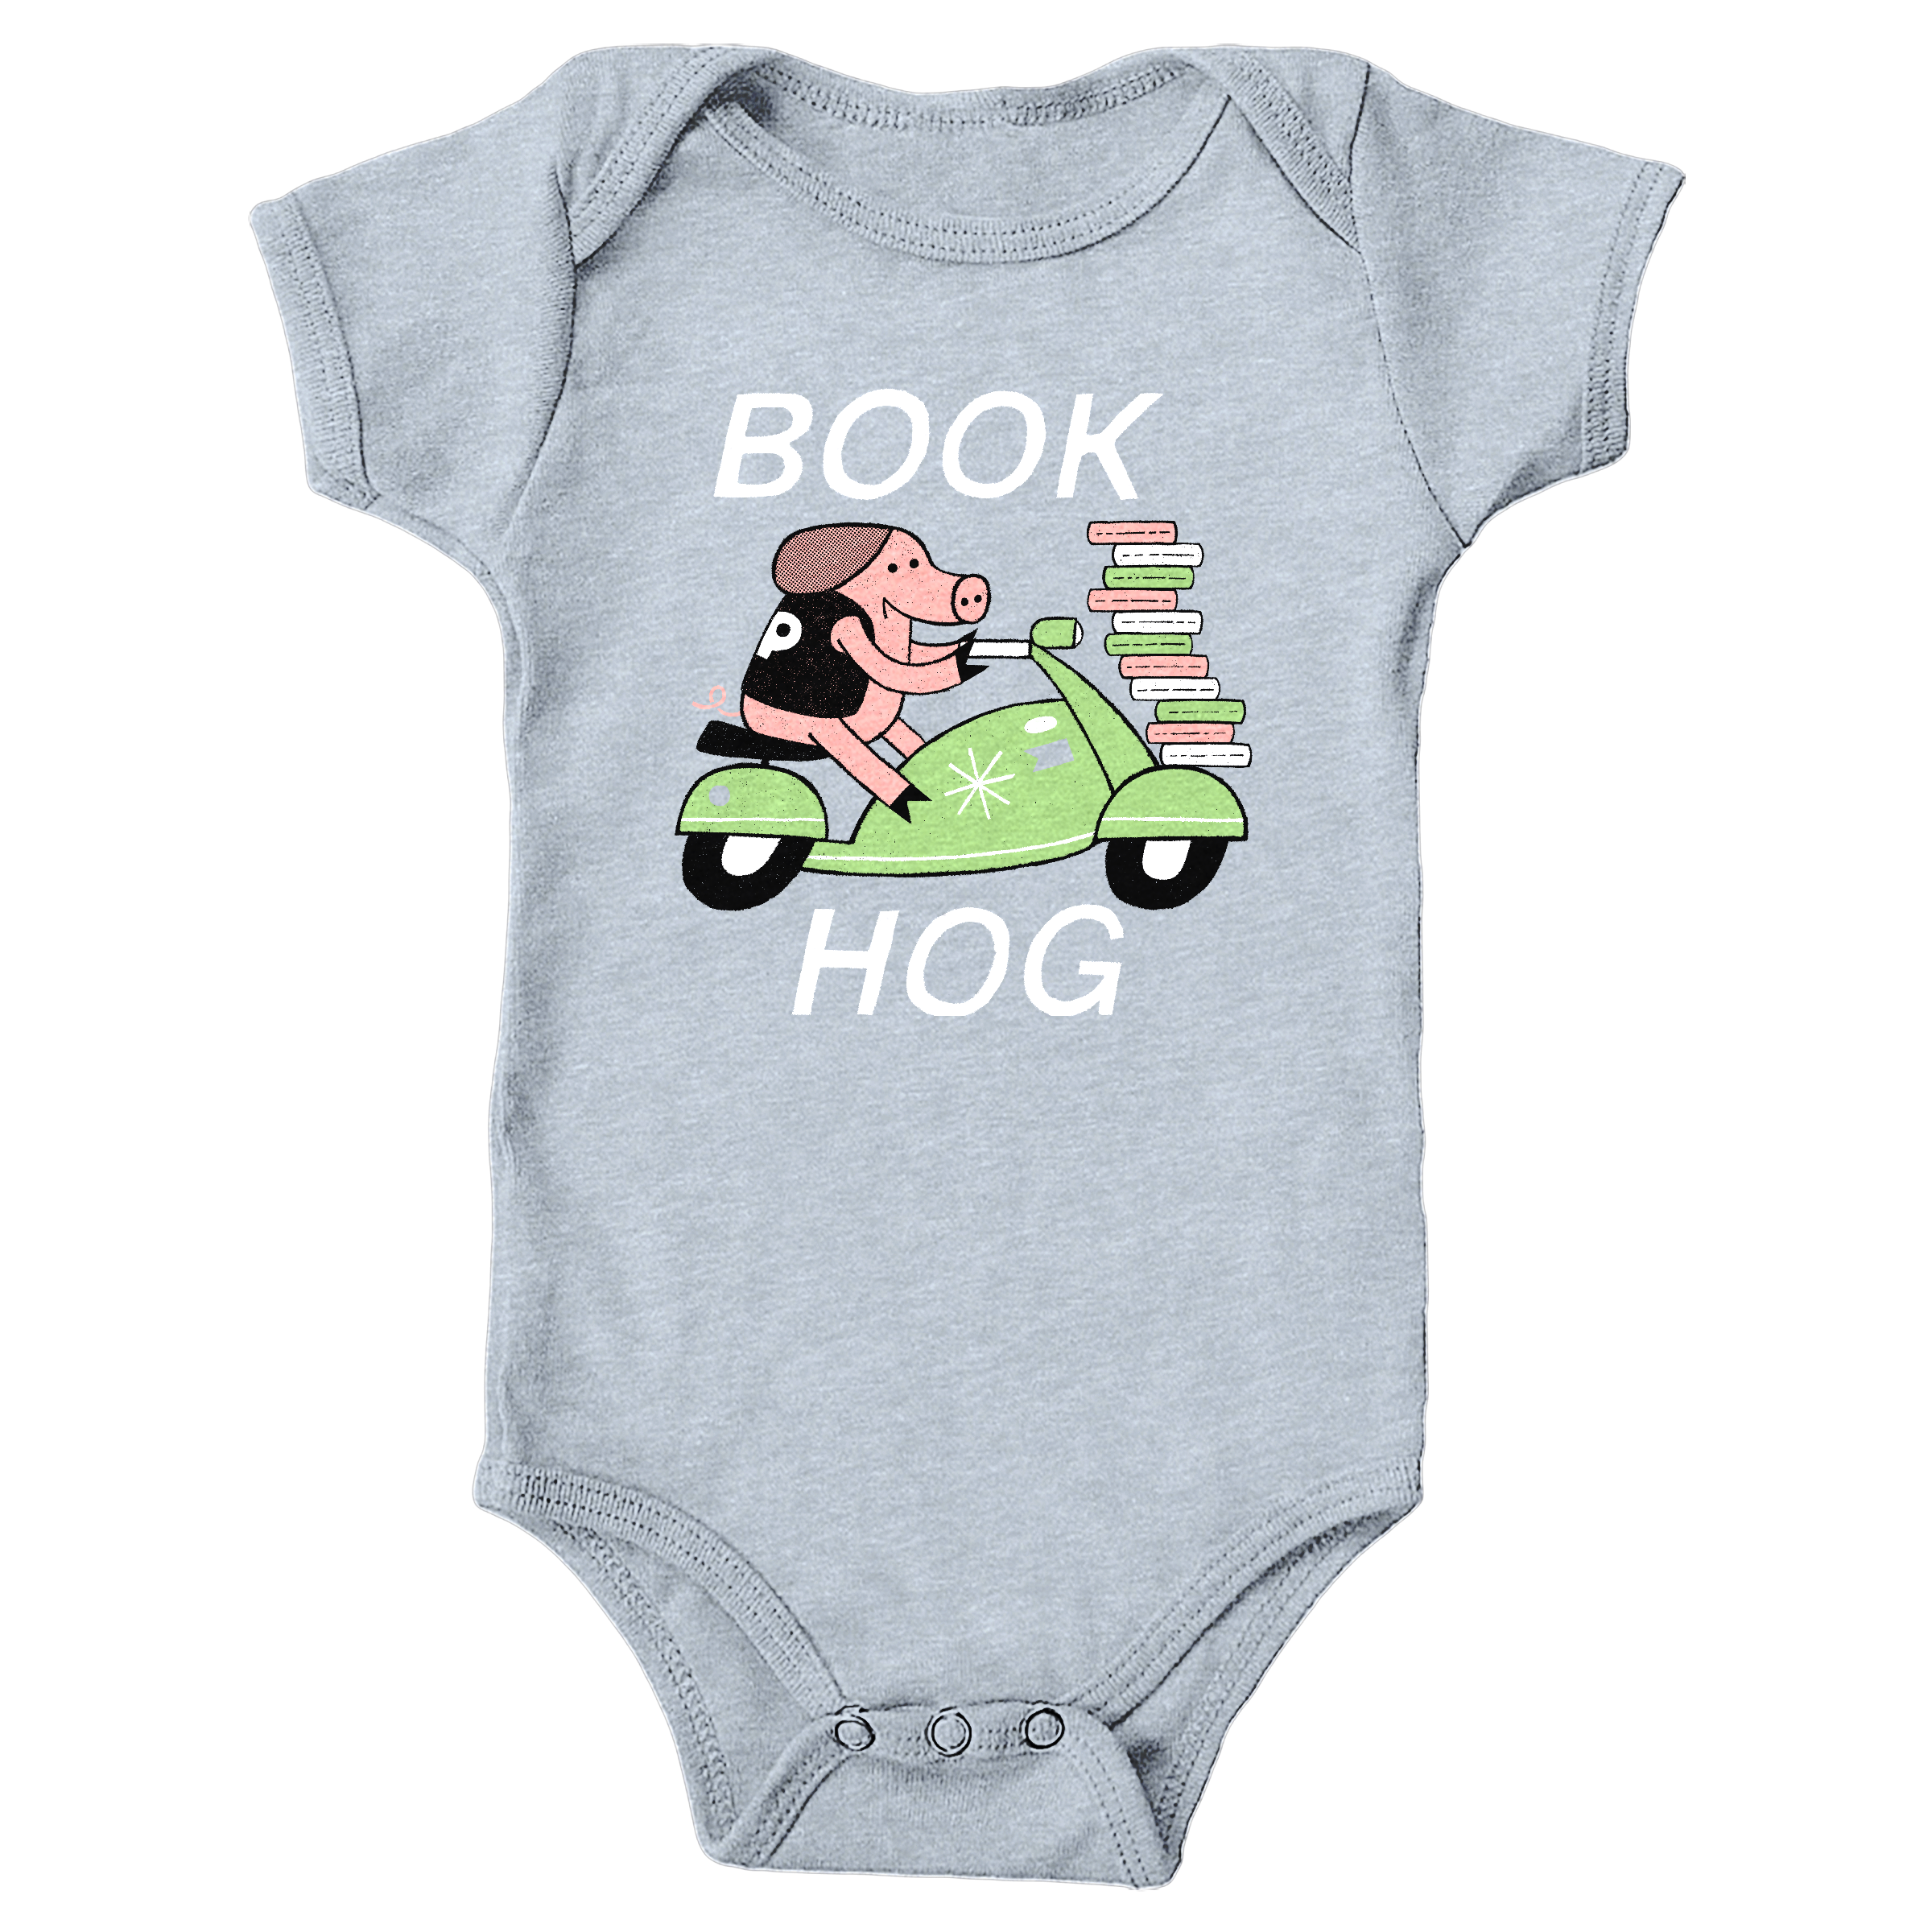 Book Hog! Heather Grey (Onesie)